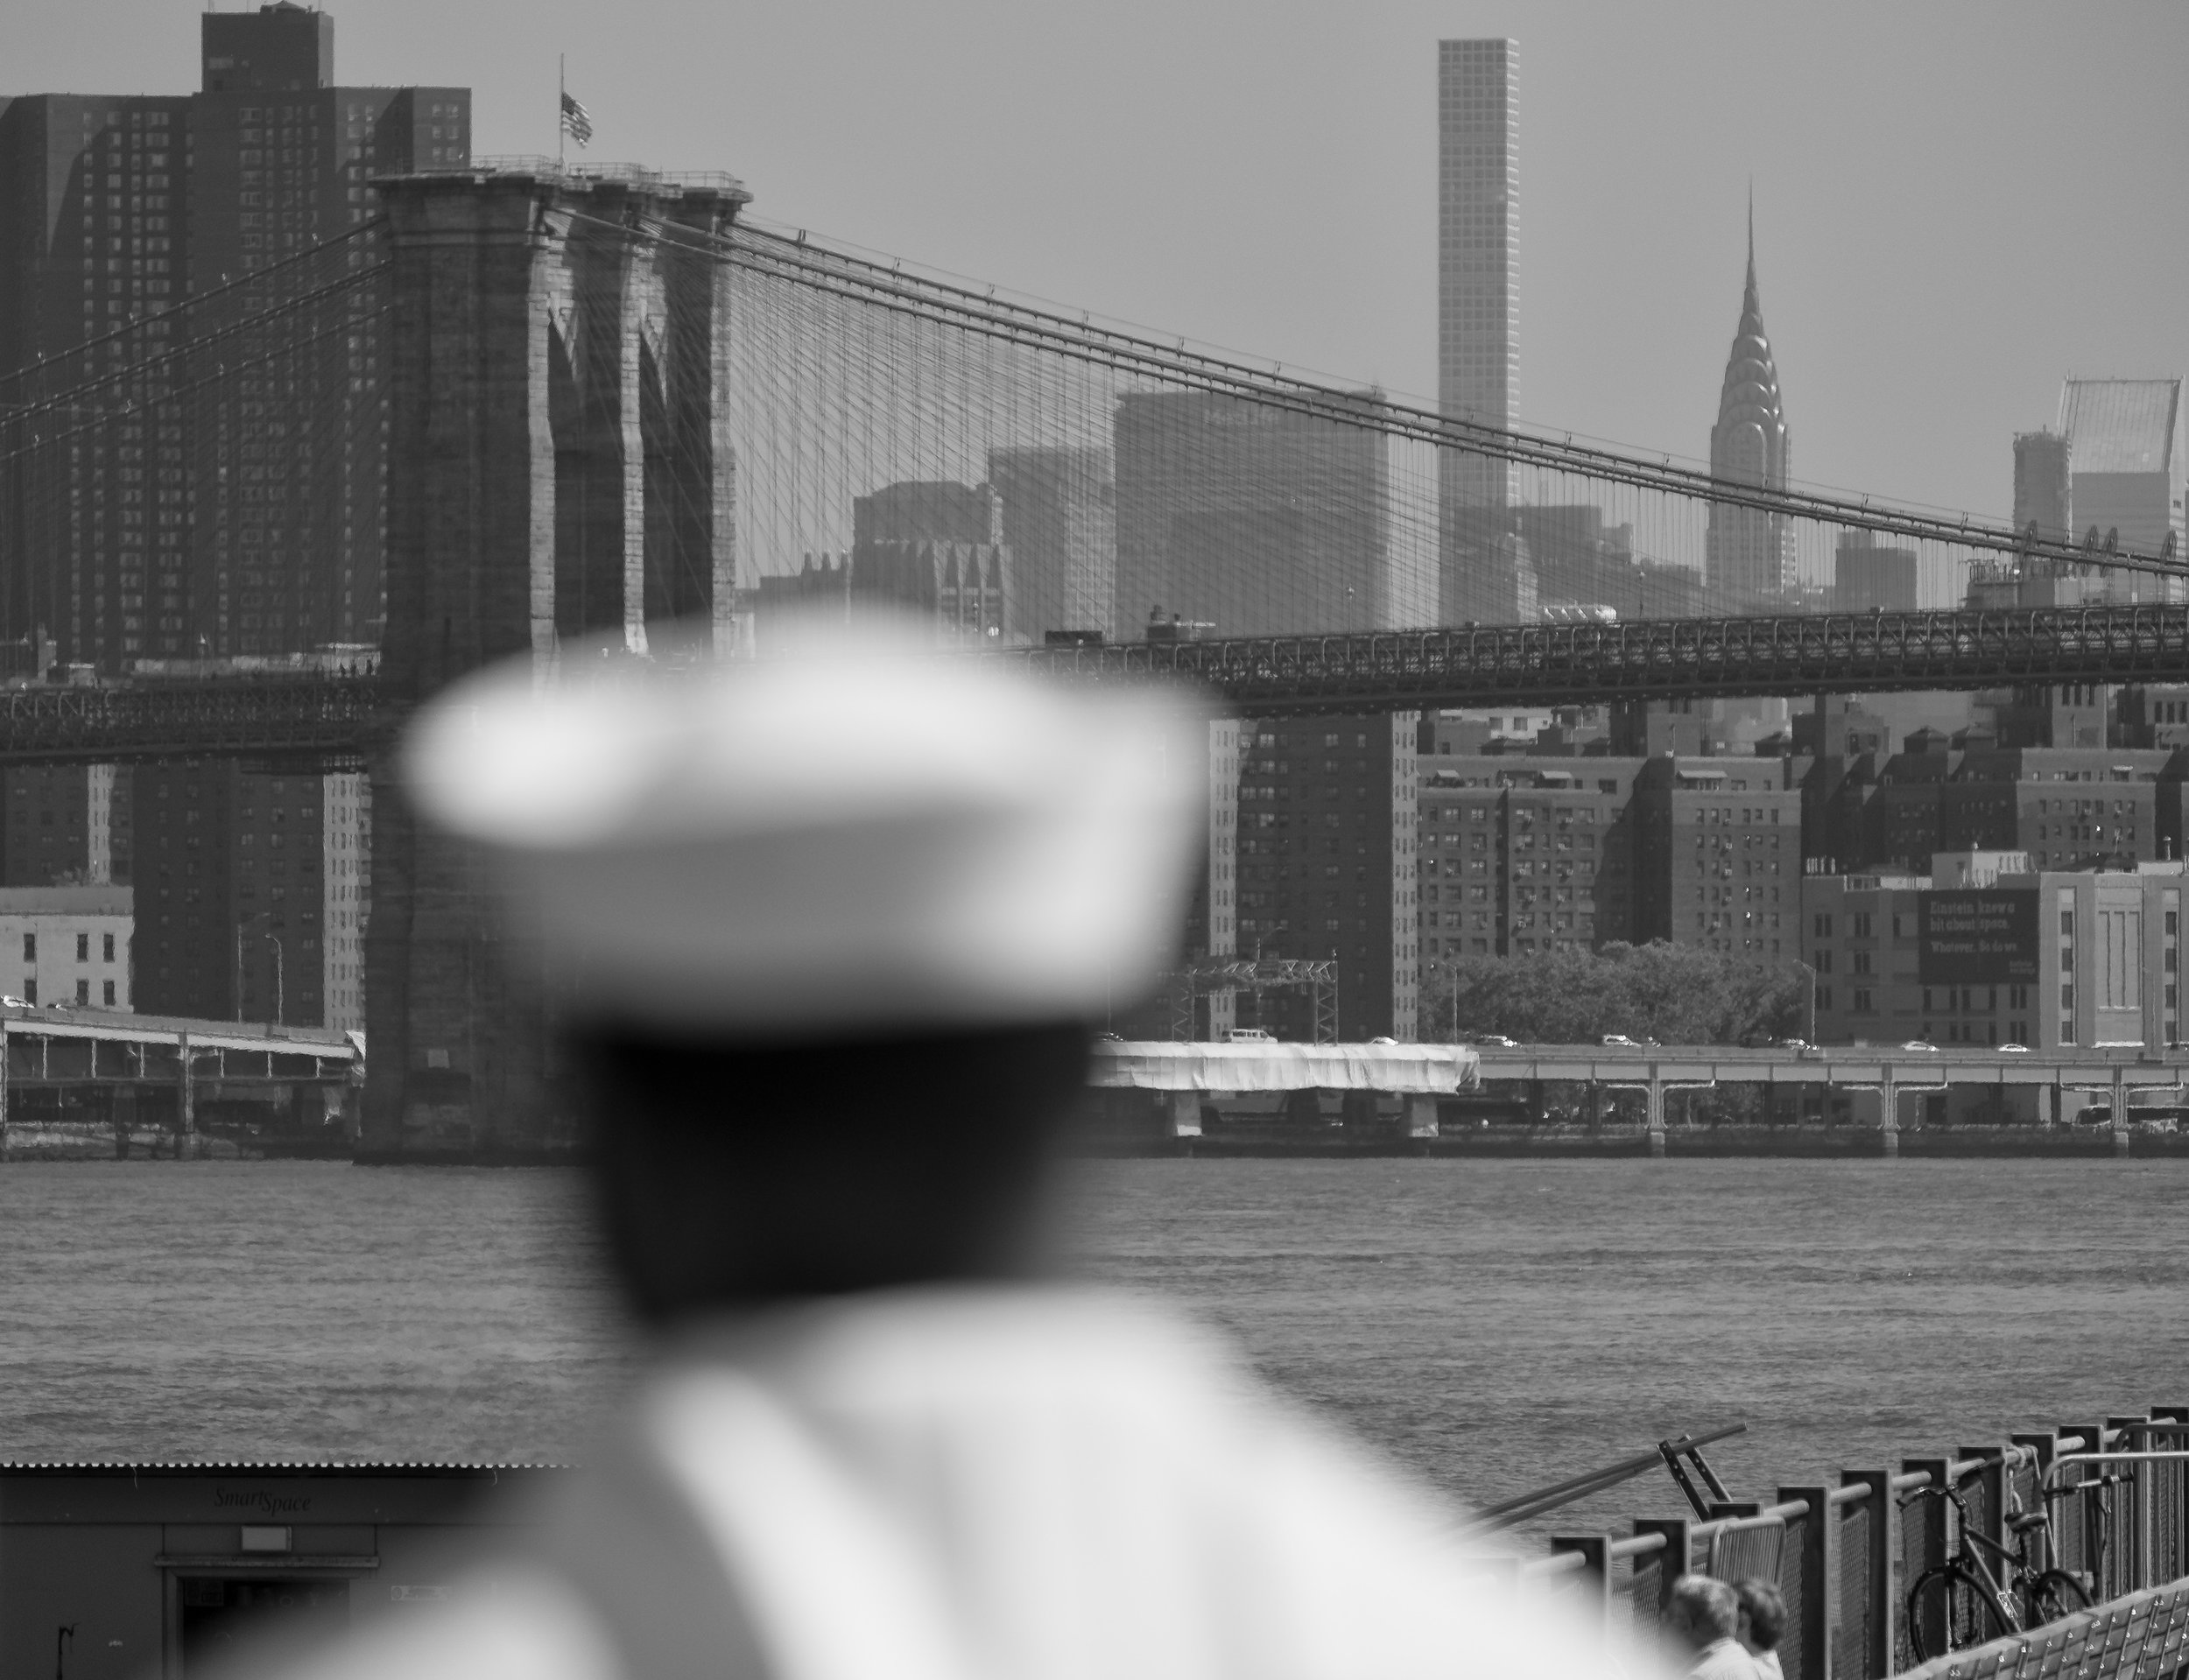 """Fleet week"" May 25, 2018. Brooklyn, New York Fujifilm X Pro2, 55-200mm, f/4.7, 1/1900 sec, ISO 200  Sometimes your camera auto-focuses on the wrong thing and you get really annoyed. Here I was trying to focus on the naval officer and make the city go soft in the background. So I refocused and took that shot next. In this case, my camera was the better photographer."